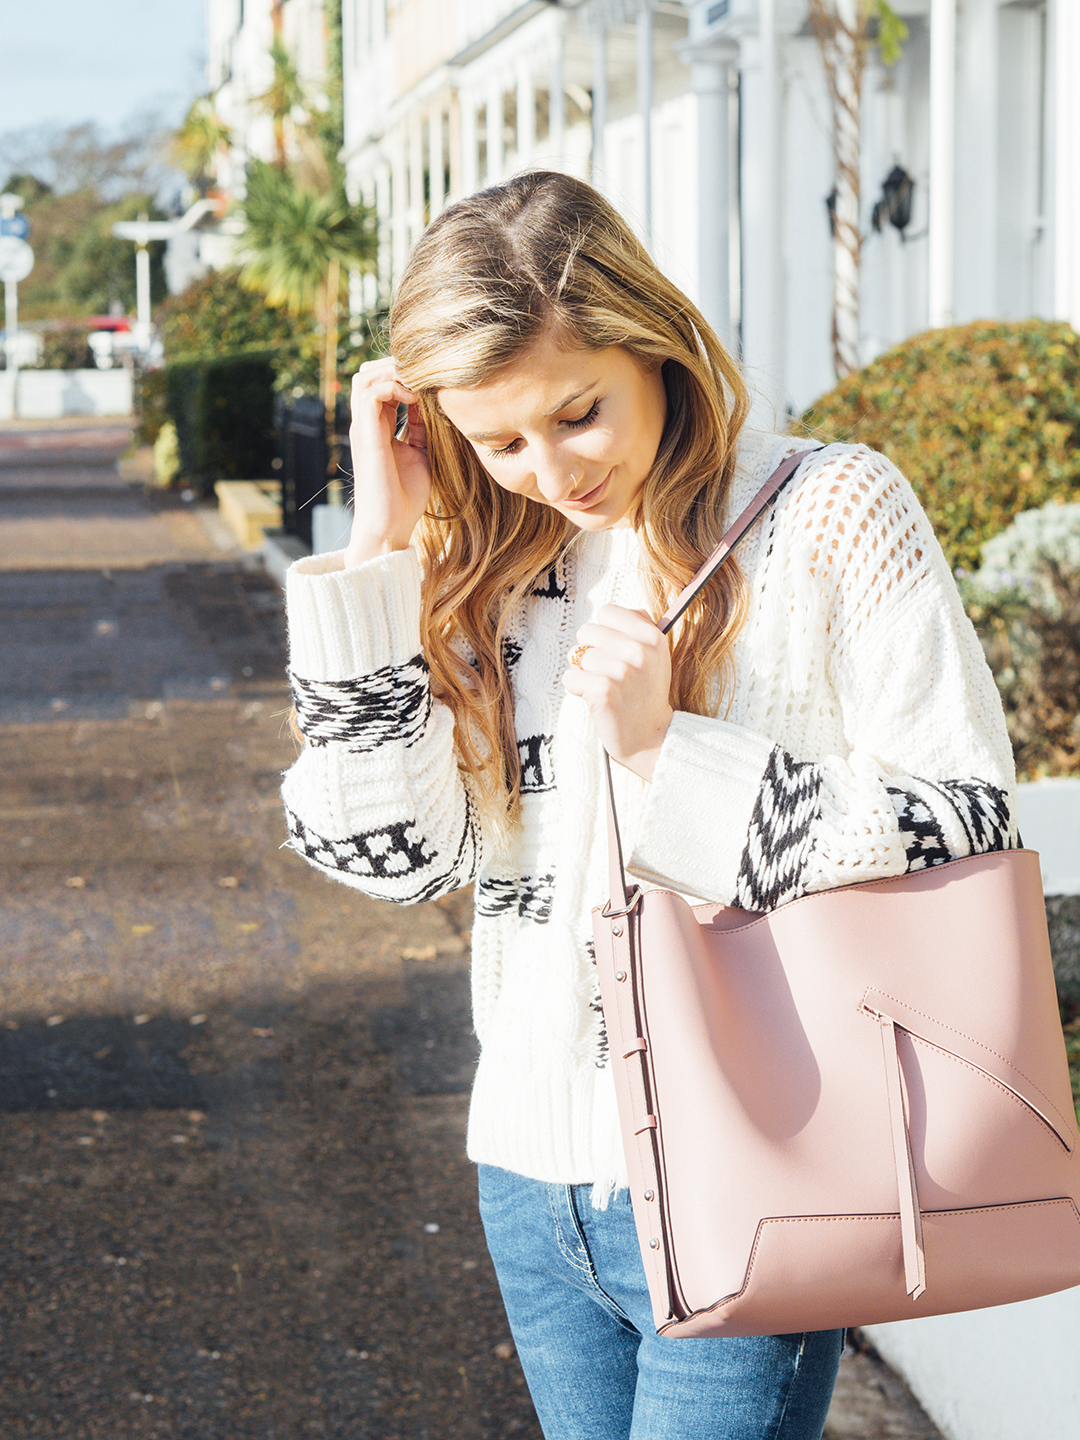 The Pink Pastel Bag Of Dreams Topshop Sicily Bag